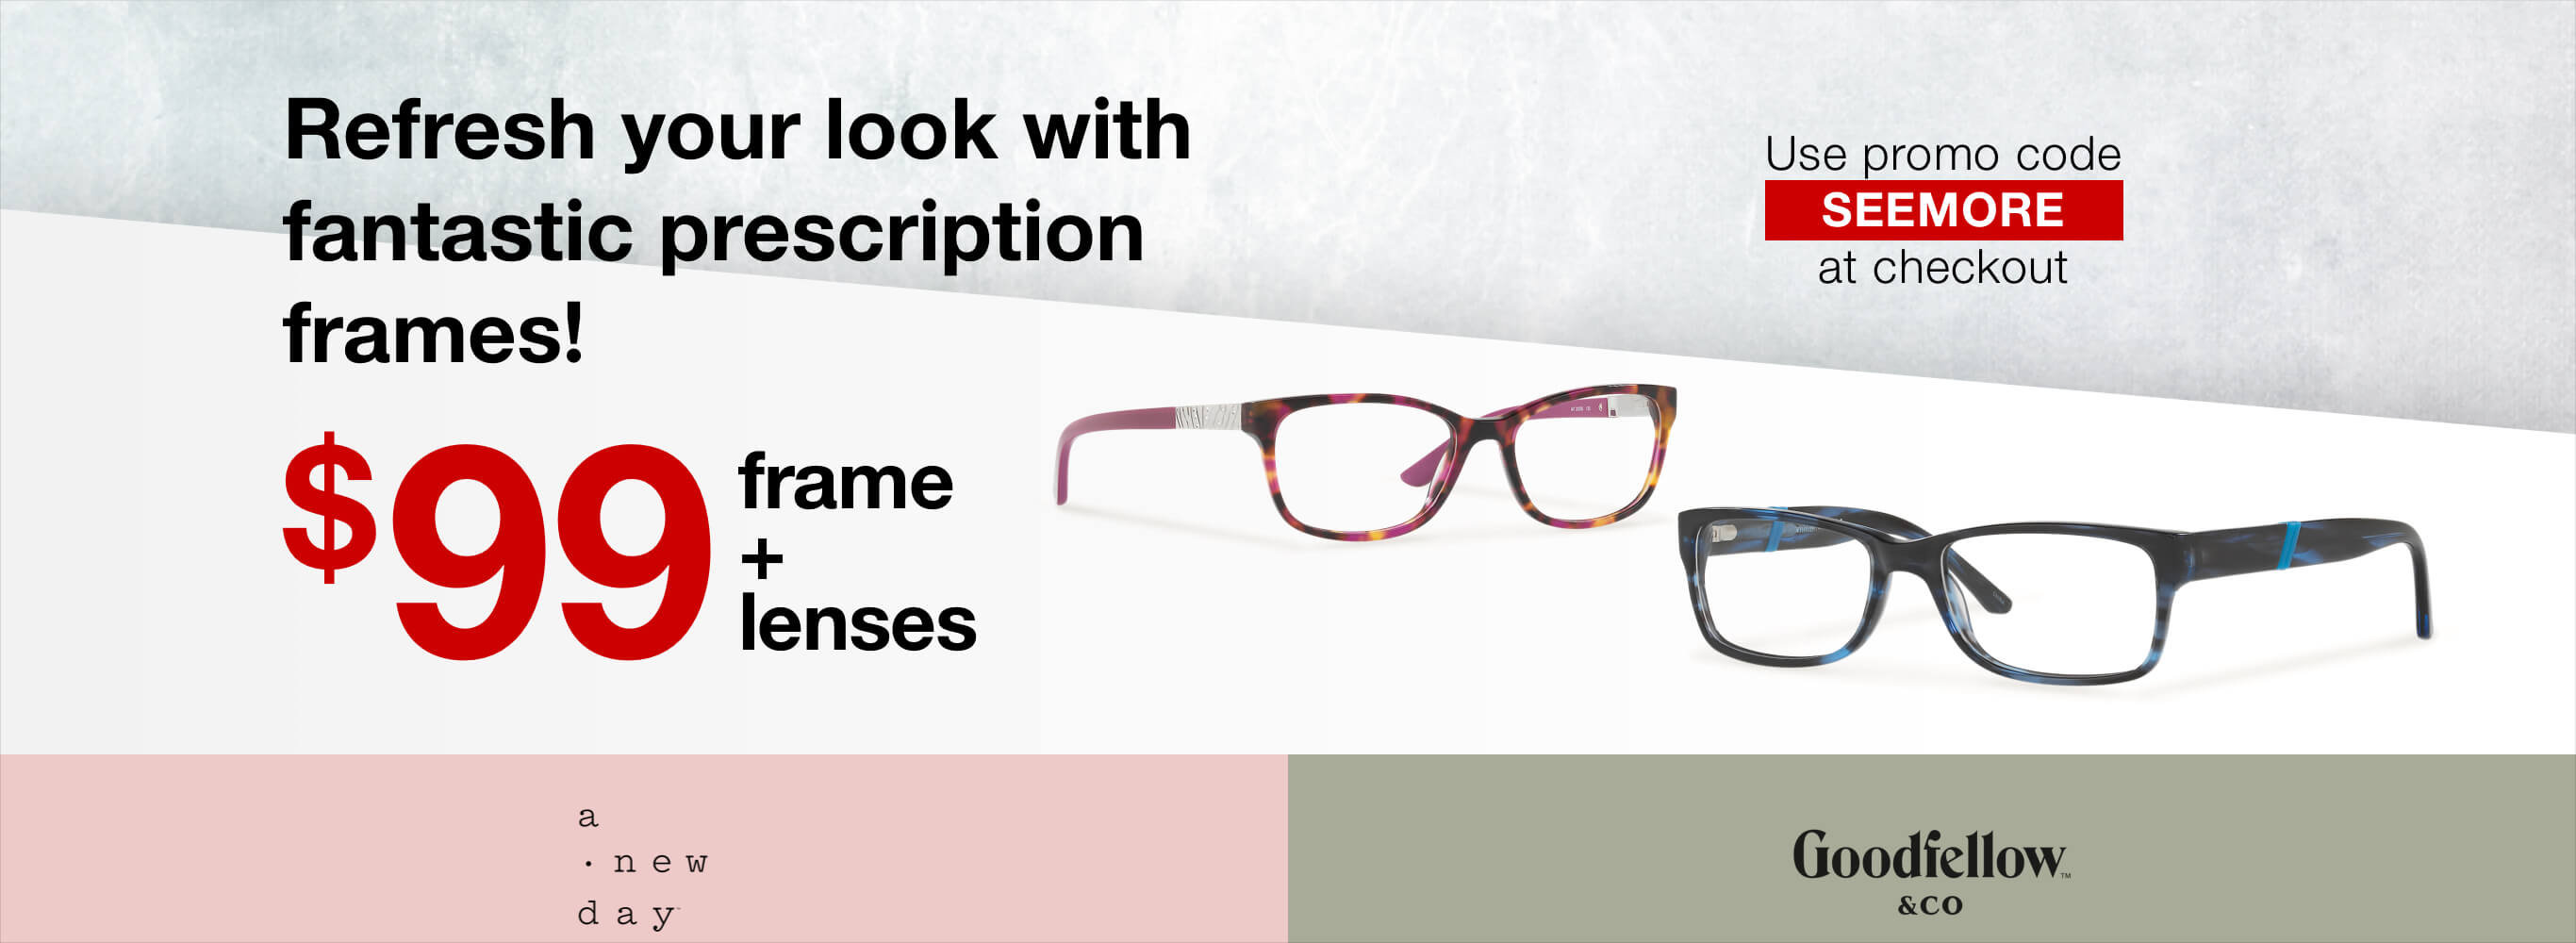 Eyewear Pros Coupons & Promo Codes